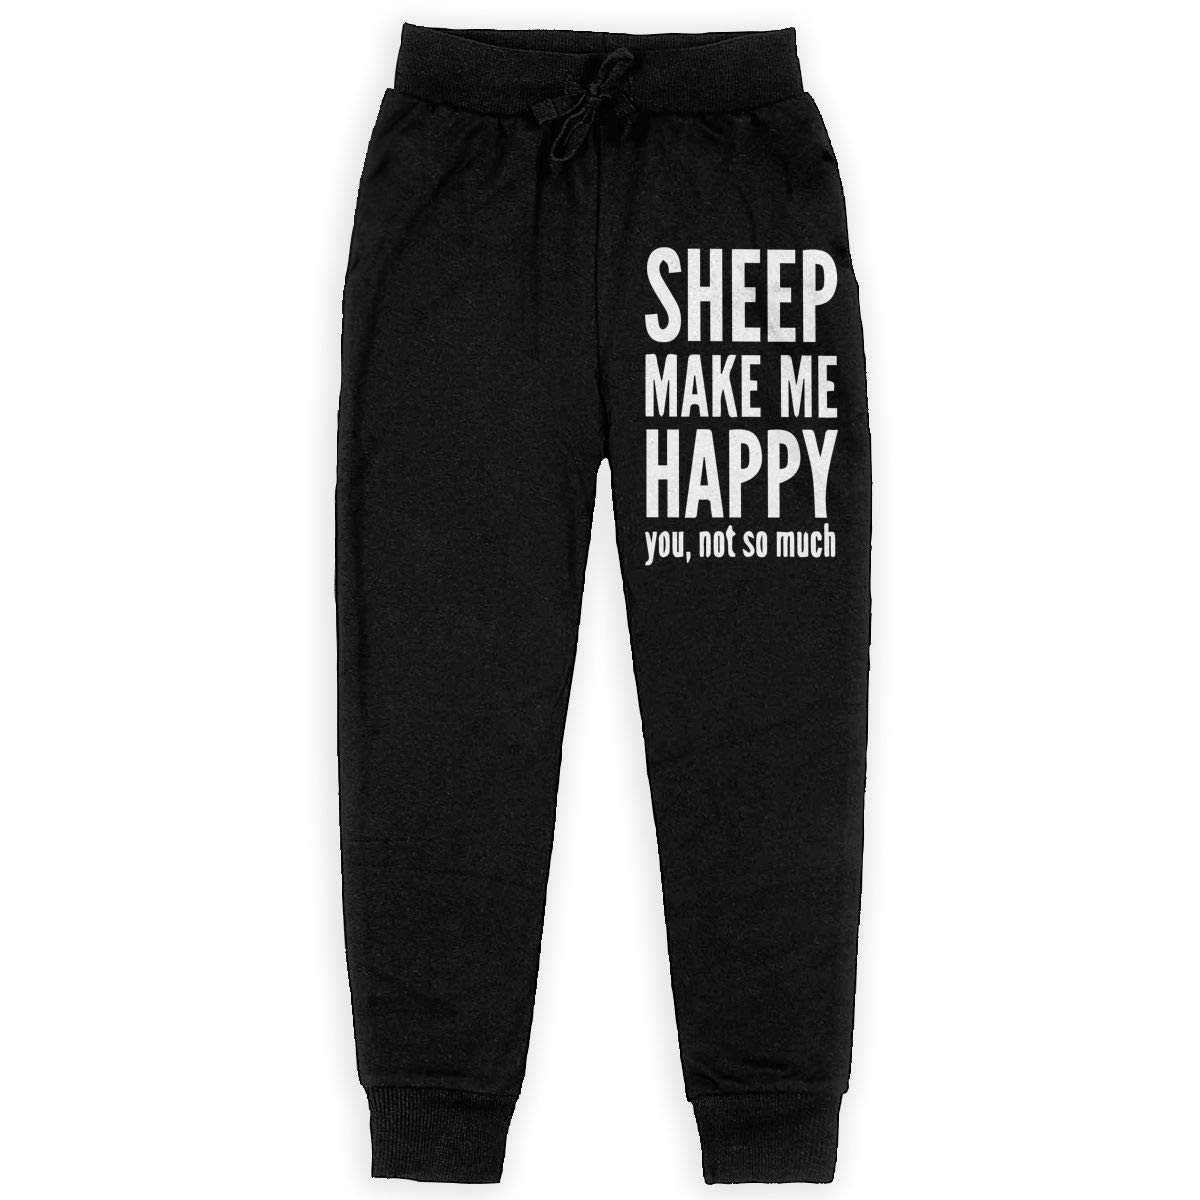 WYZVK22 Sheep Makes Me Happy Soft//Cozy Sweatpants Boys Sweat Pant for Teenager Girls